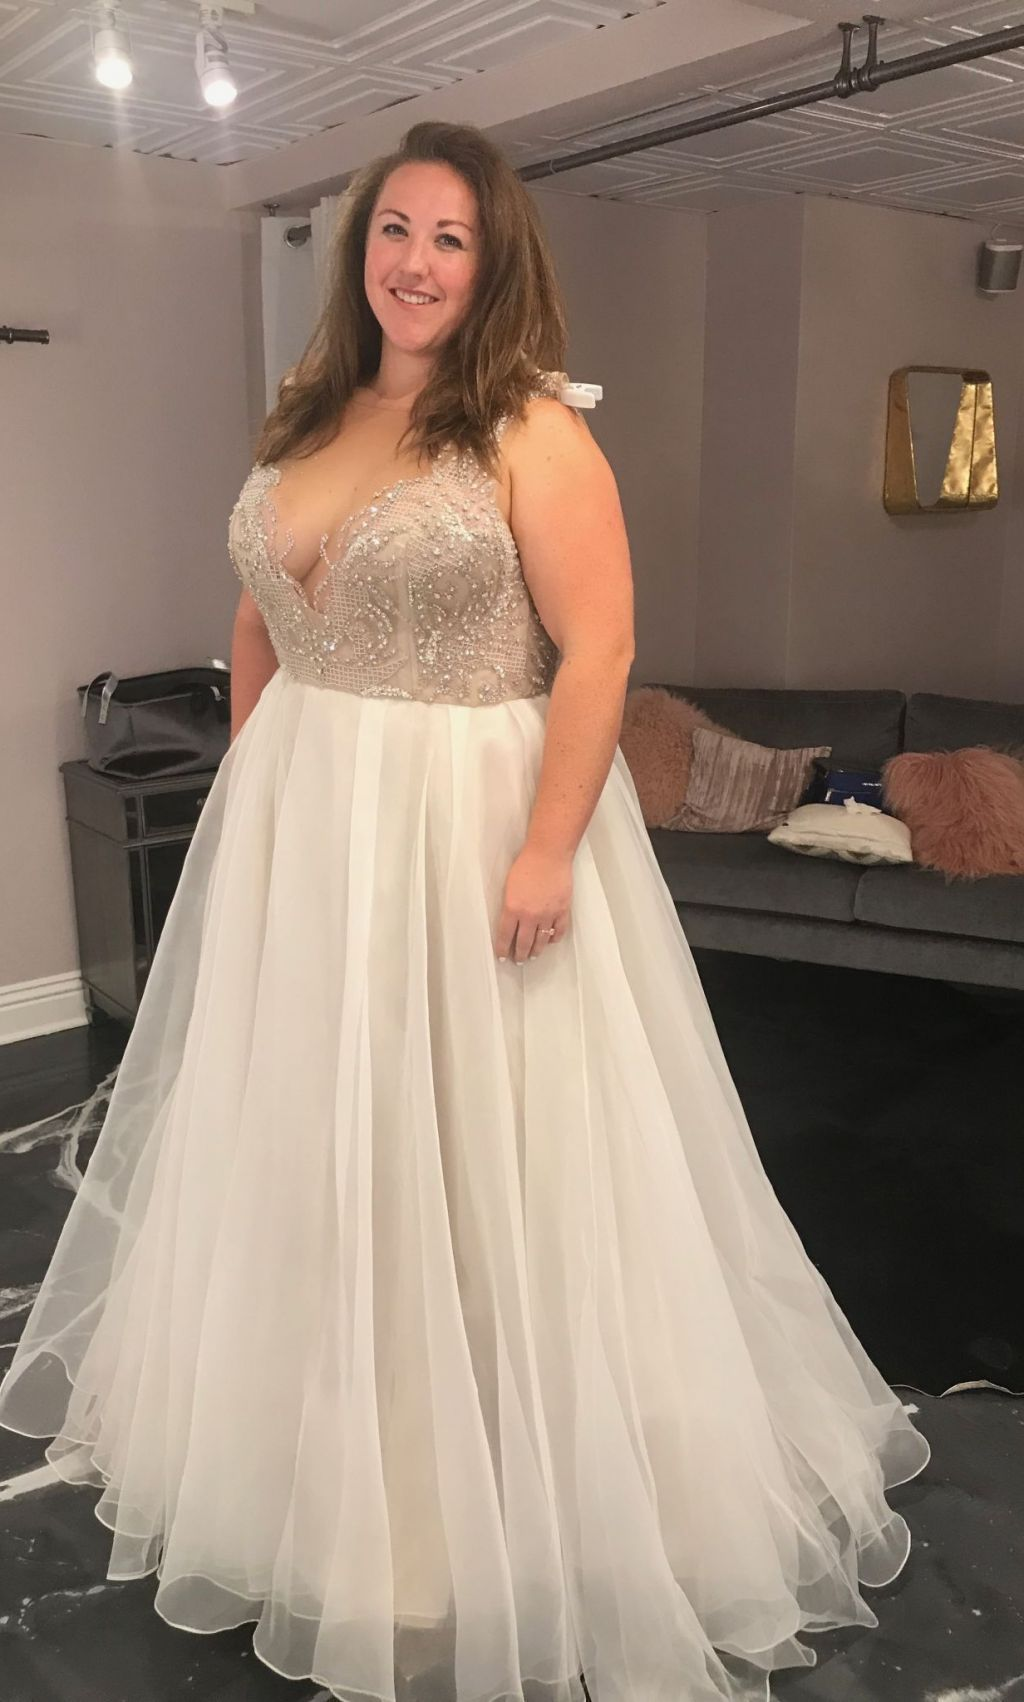 Sweetheart neckline plus size wedding dresses from Darius ...